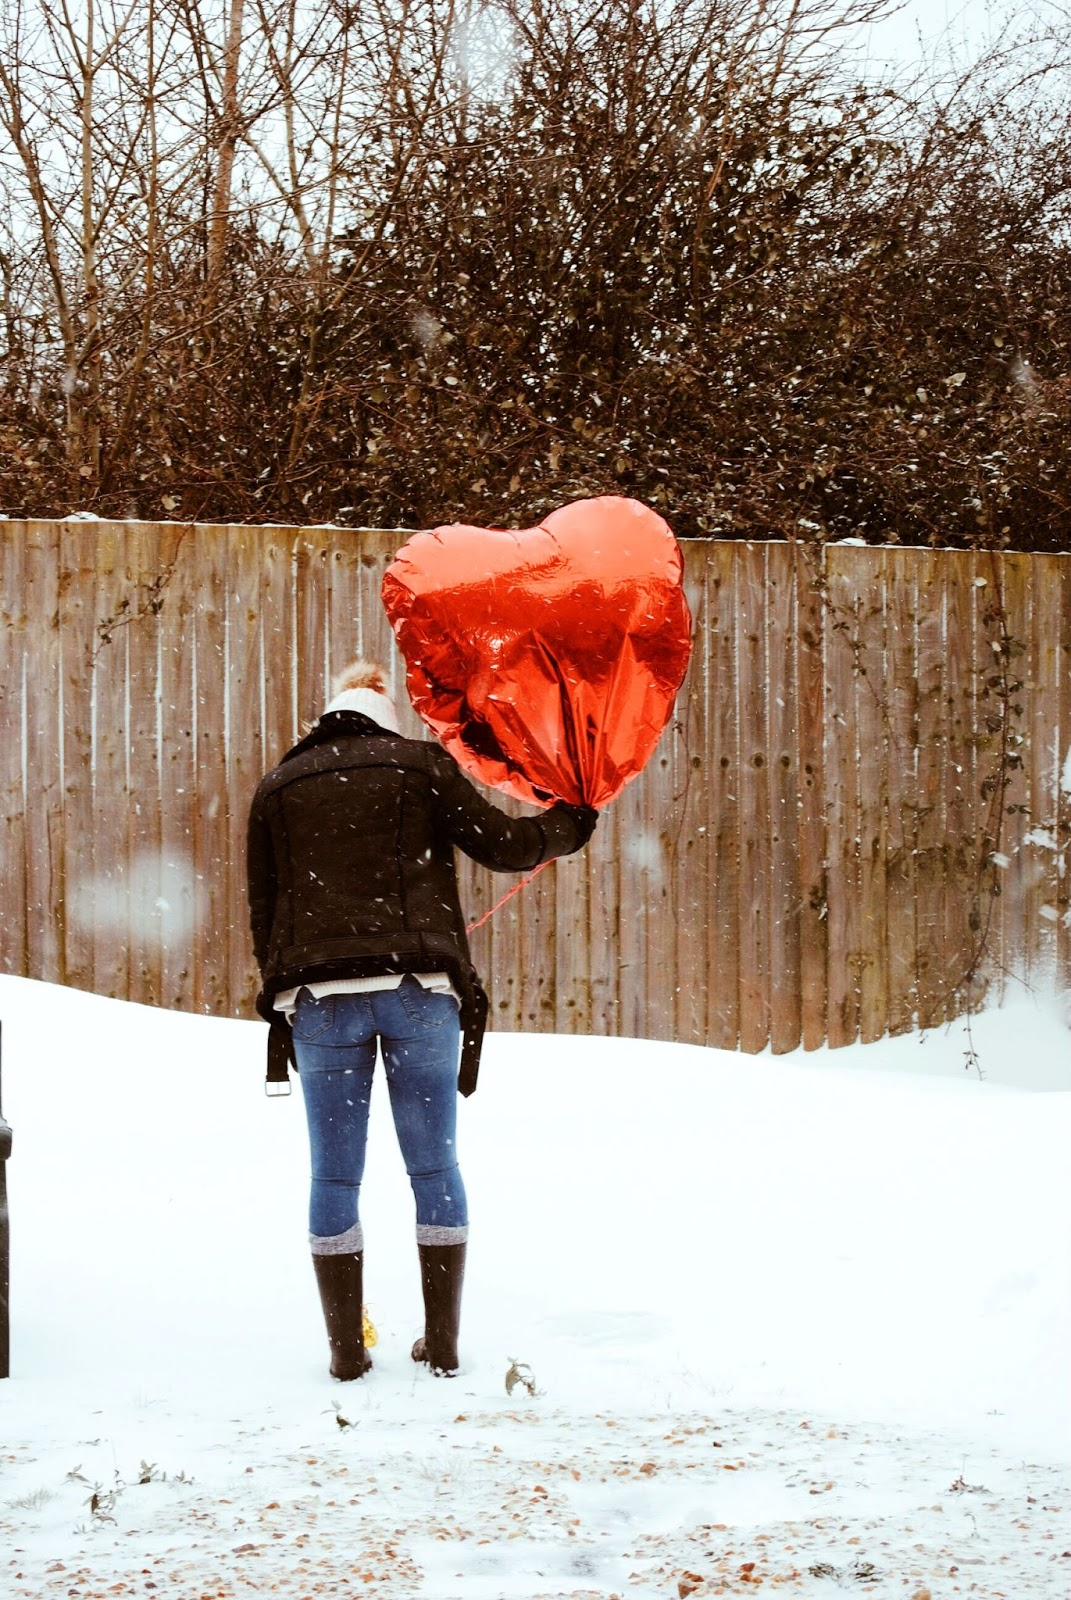 99 red balloons go by snow day 2018 stormemma photography landscape red heart